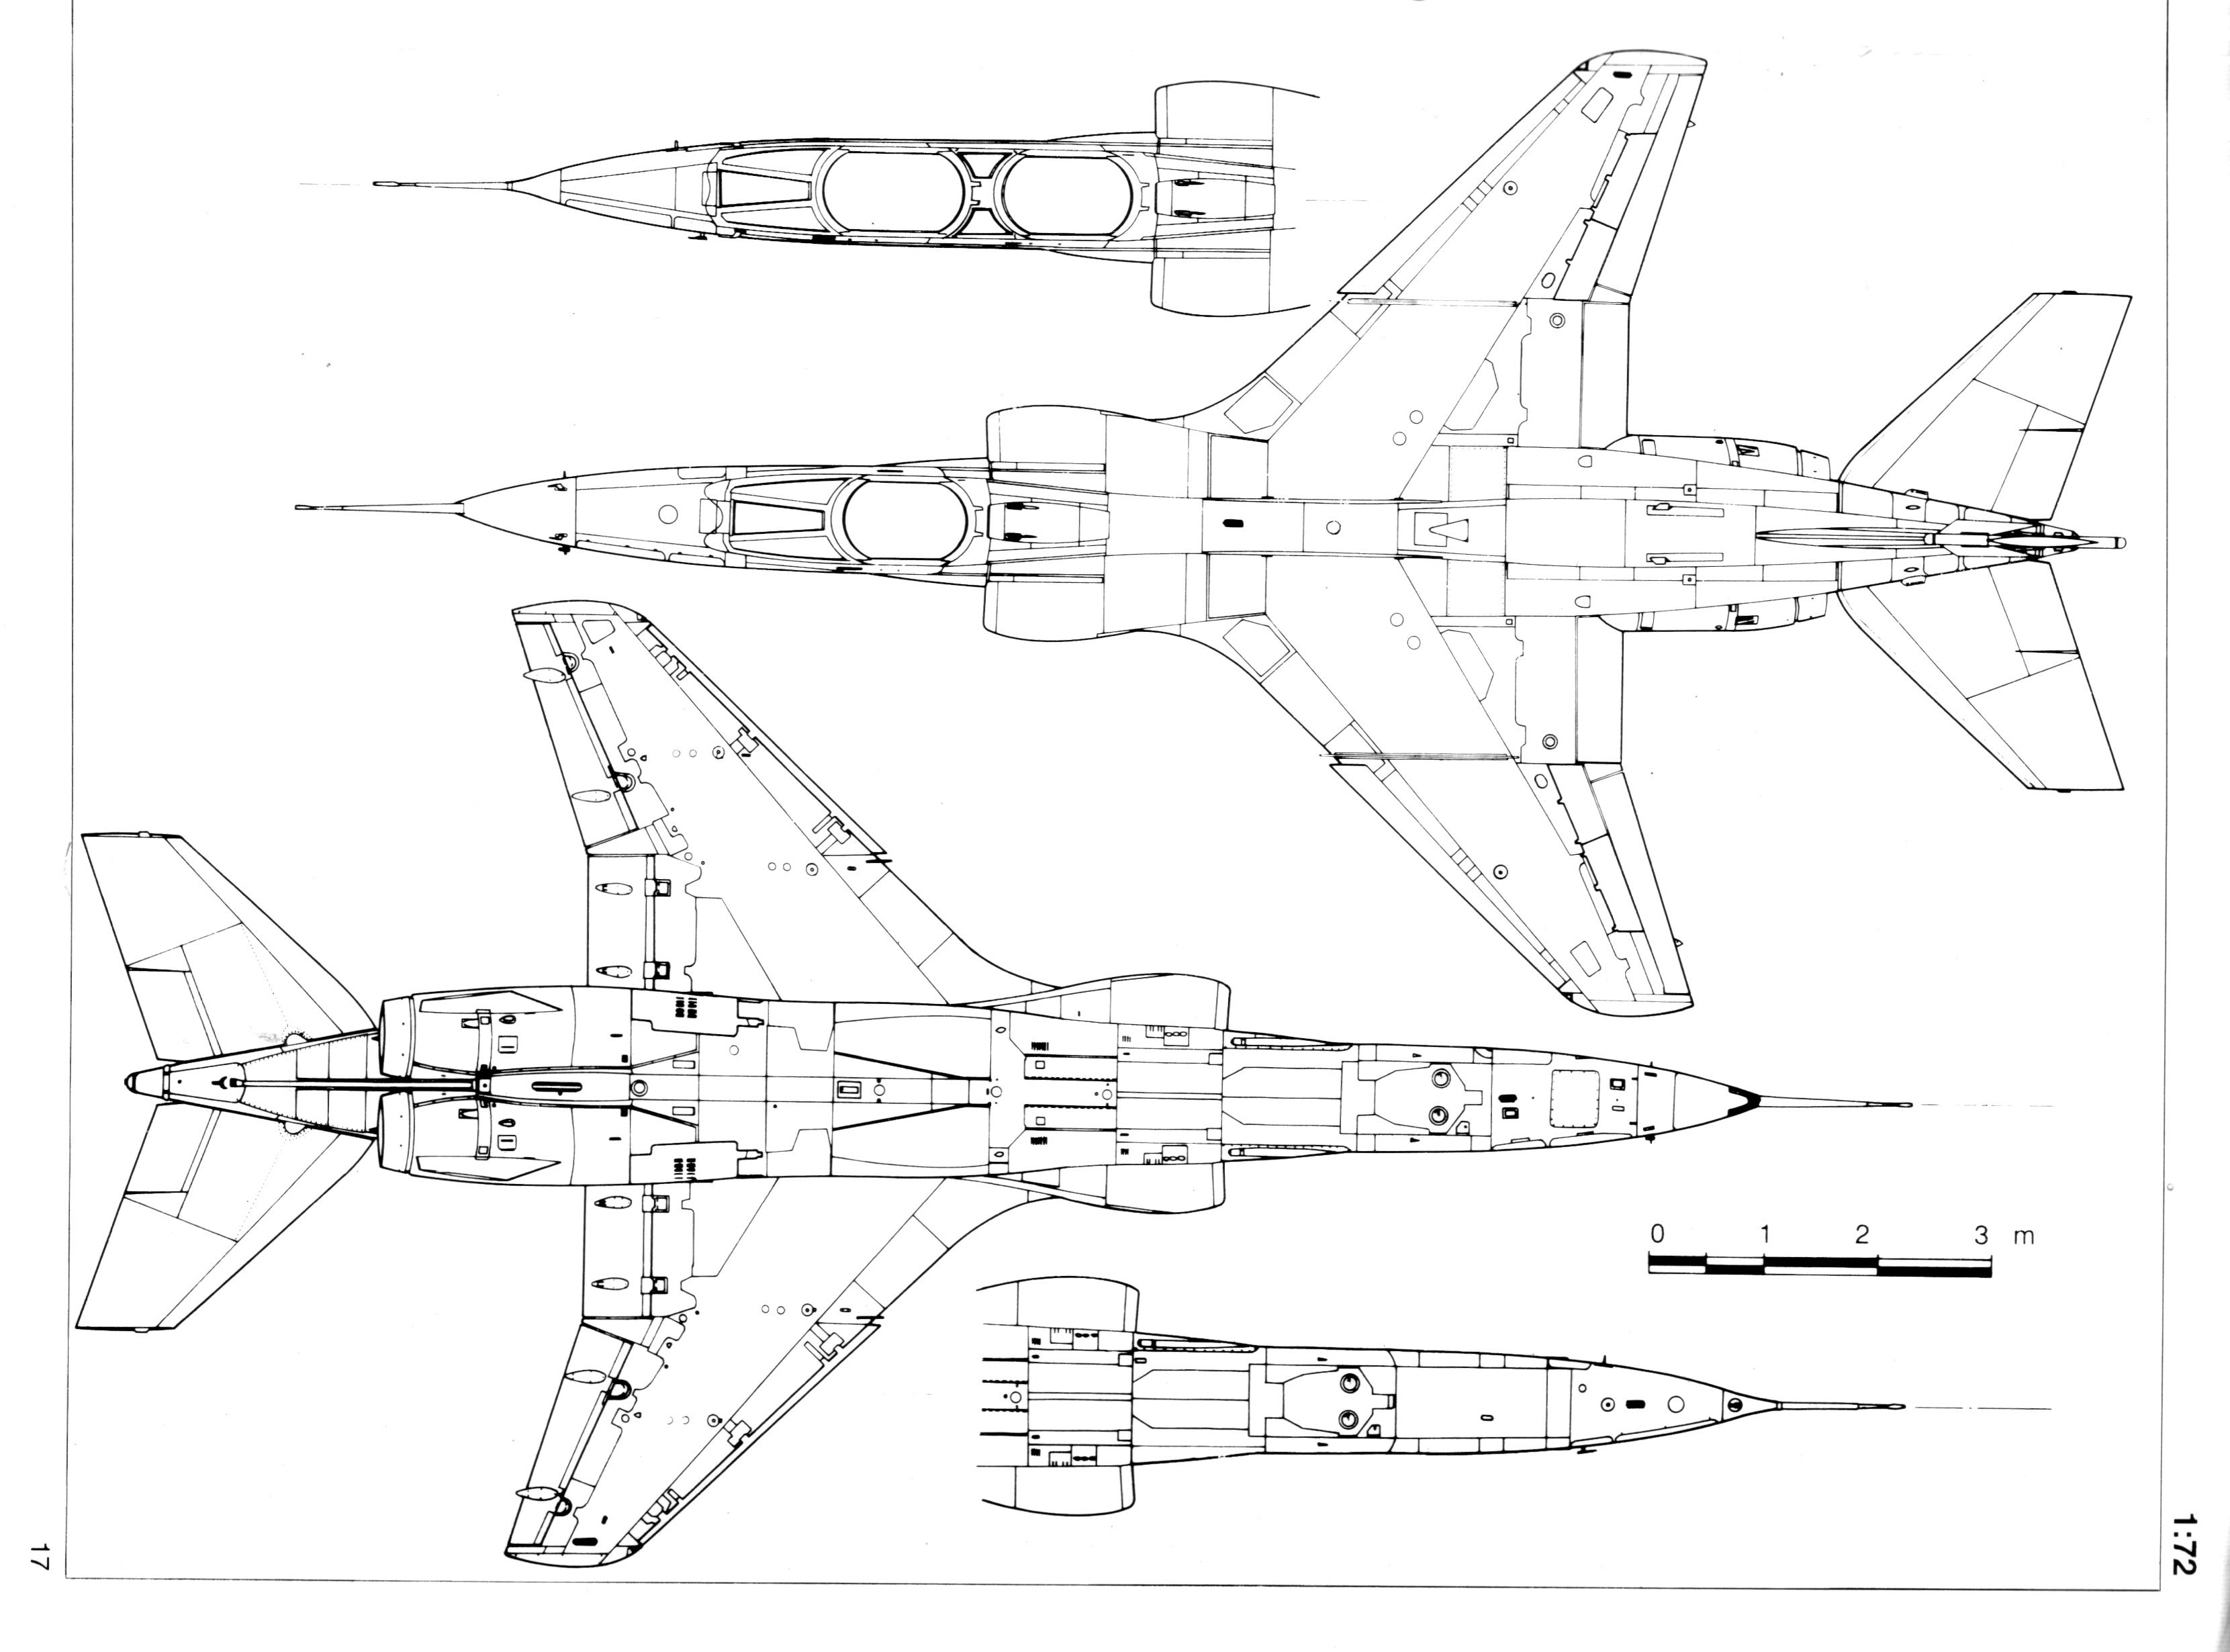 SEPECAT Jaguar blueprint